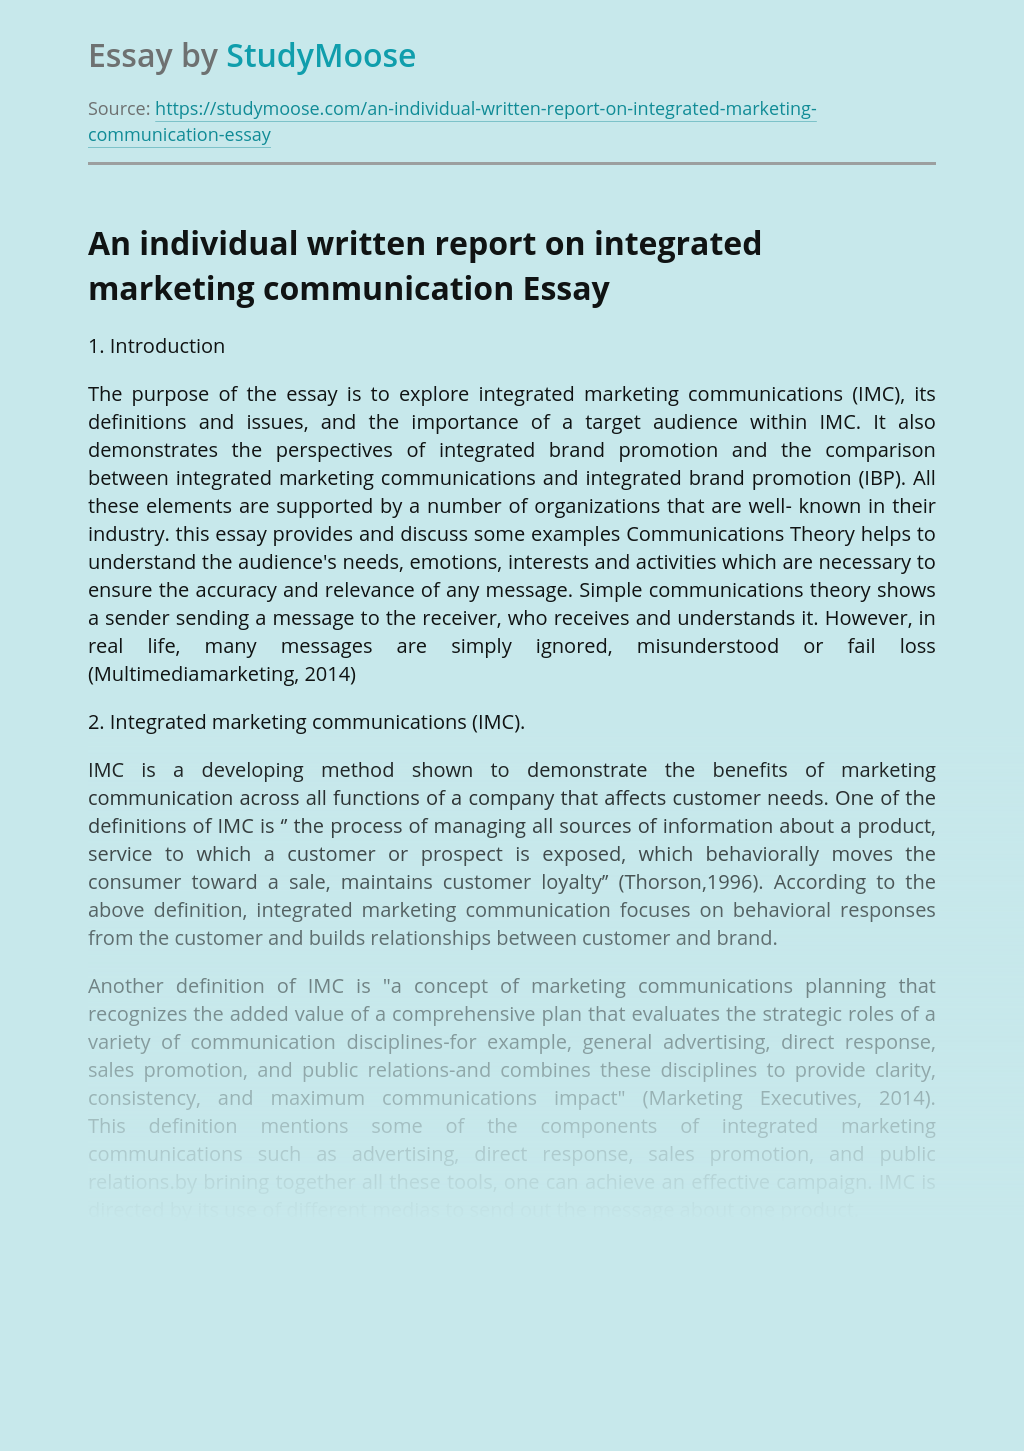 An individual written report on integrated marketing communication